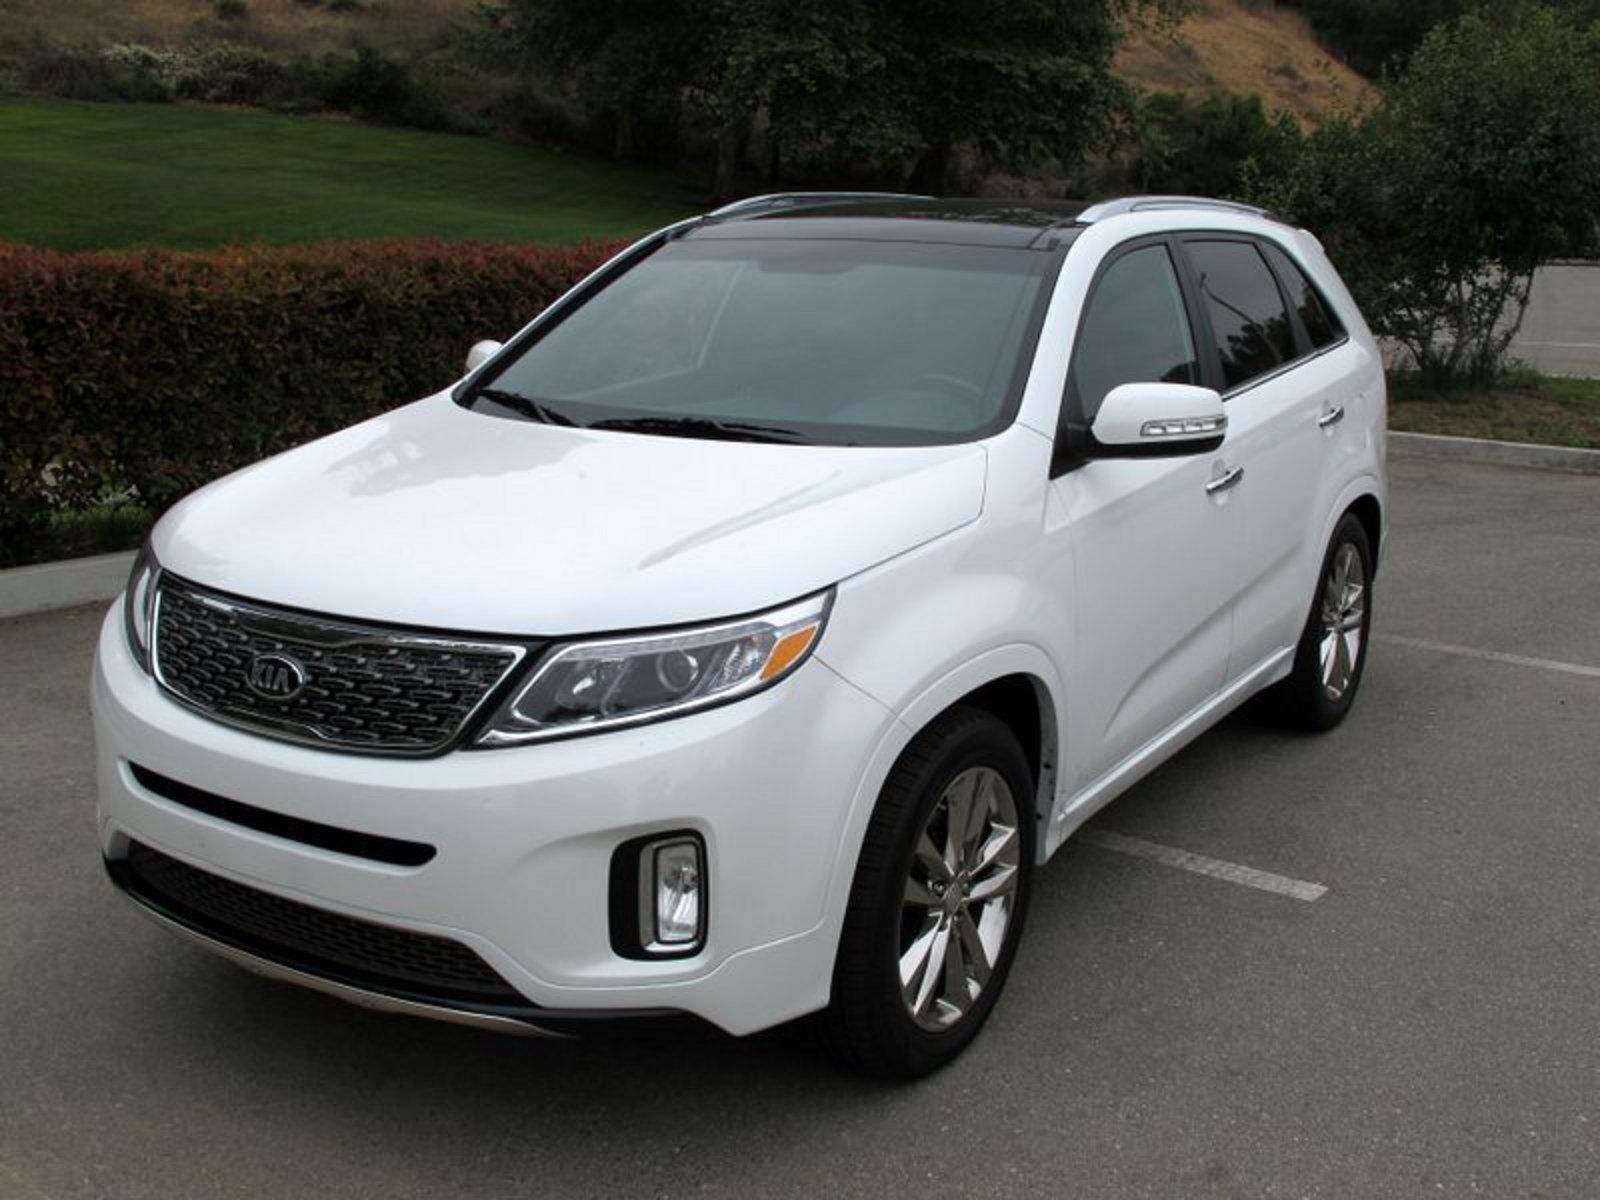 The Top Ten 2014 Compact Family SUVs Starting under $30,000